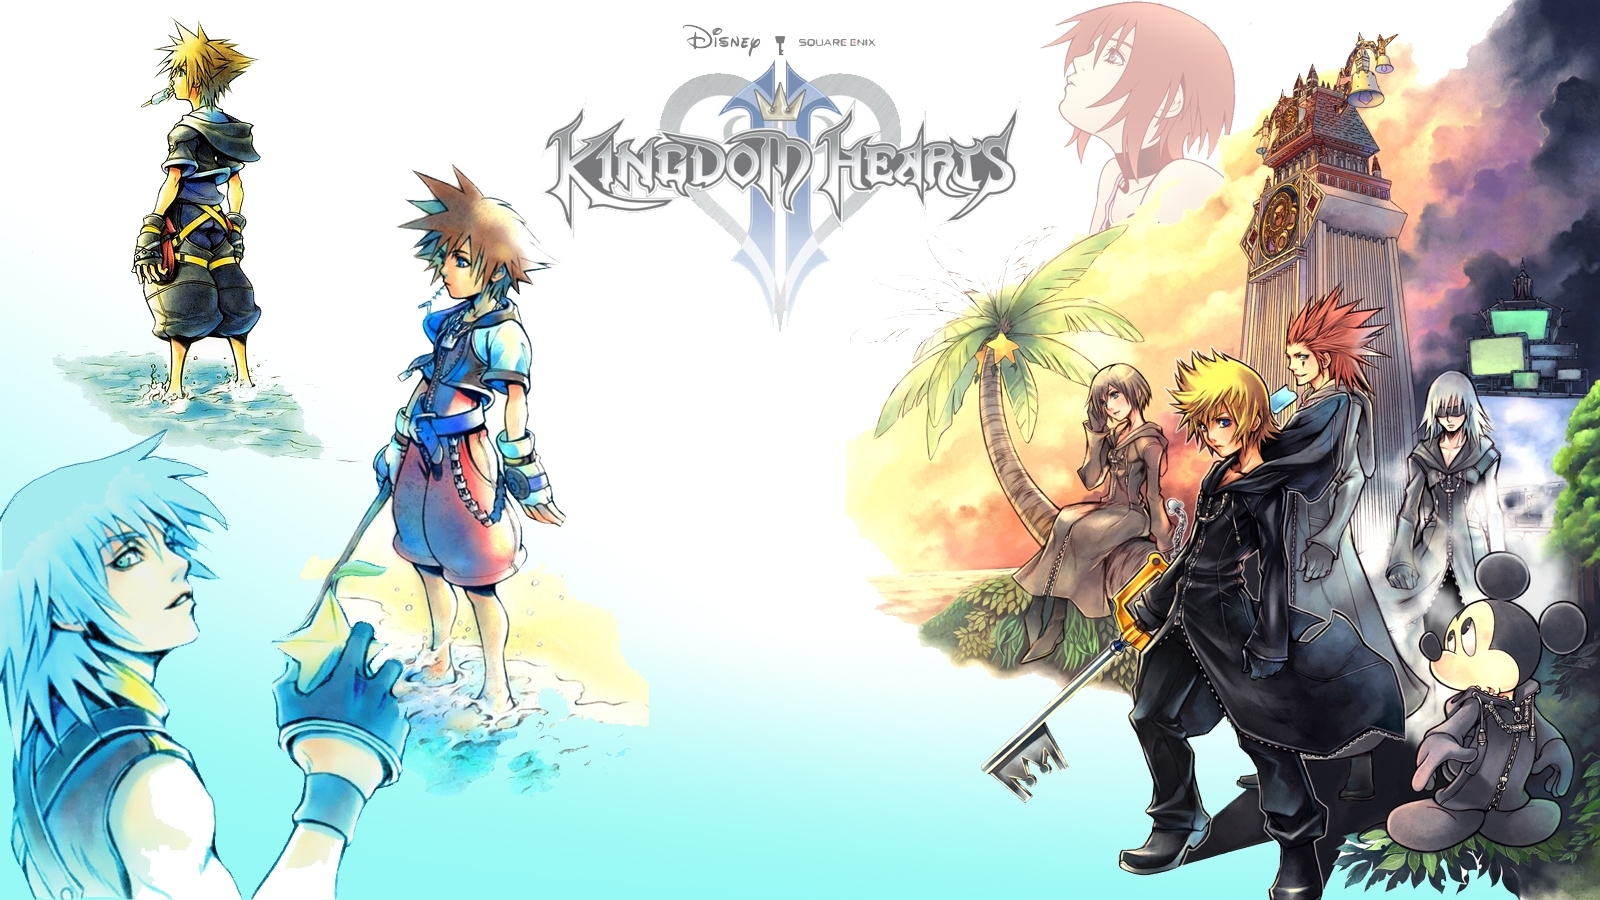 kingdom hearts wallpaper and background image | 1600x900 | id:75968